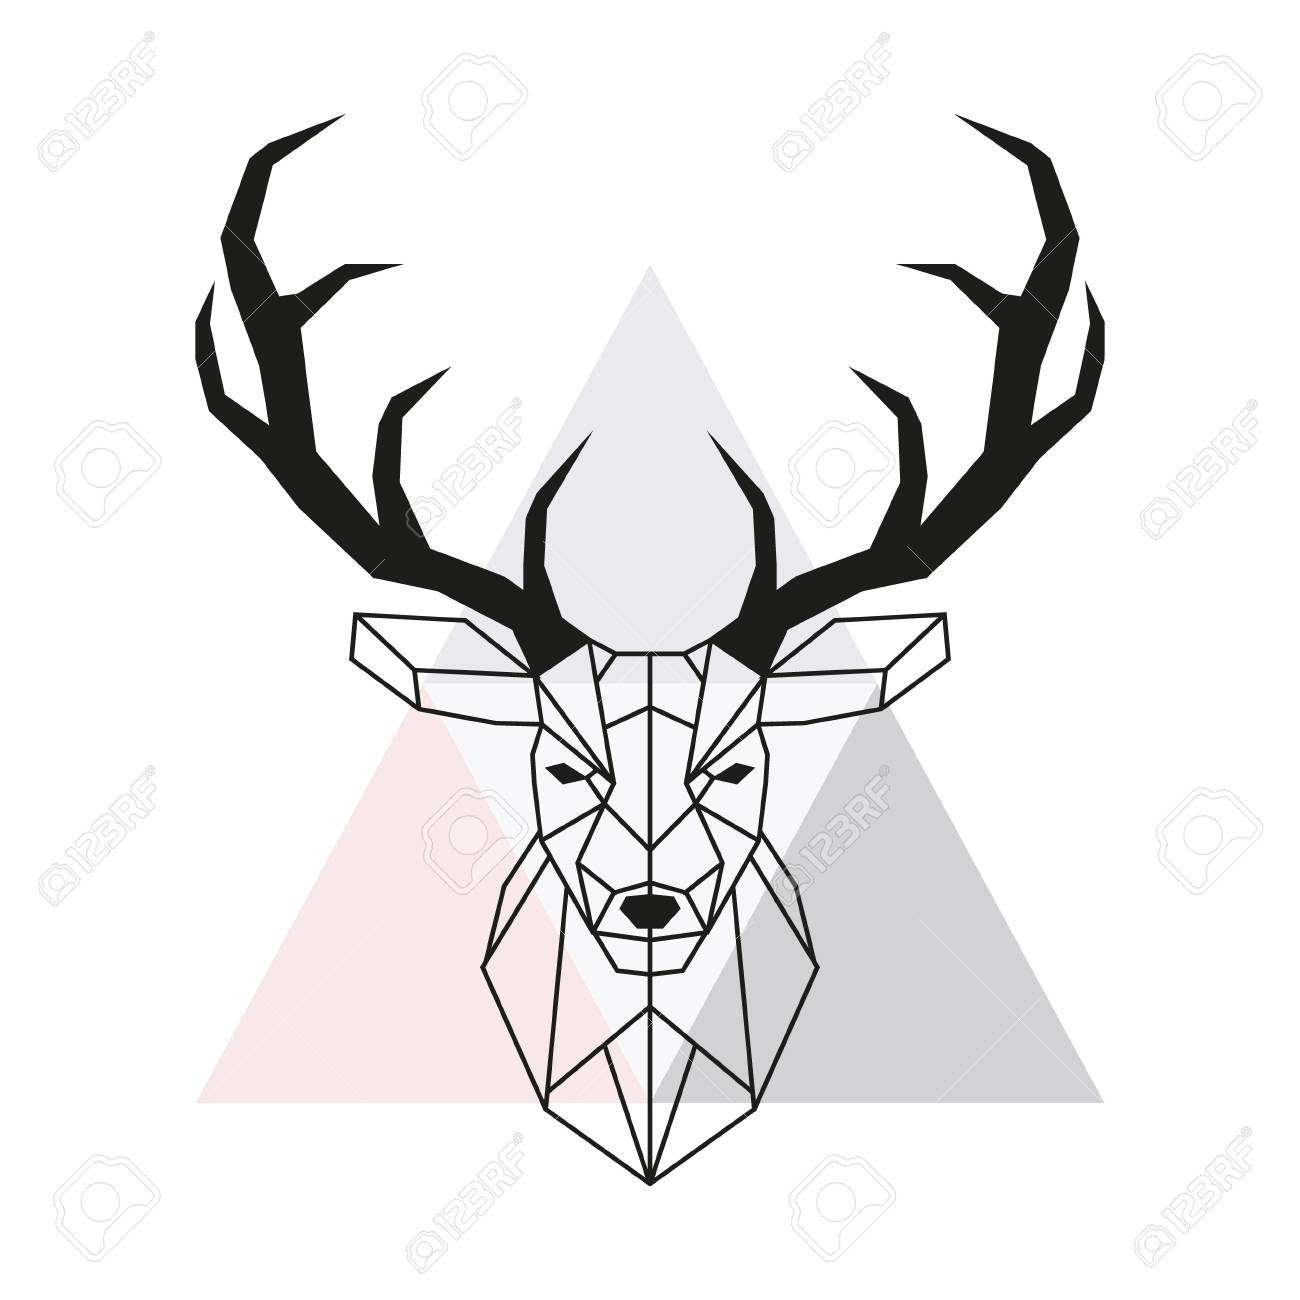 Vector Geometric Deer Head Stag Head And Antlers Low Poly Style